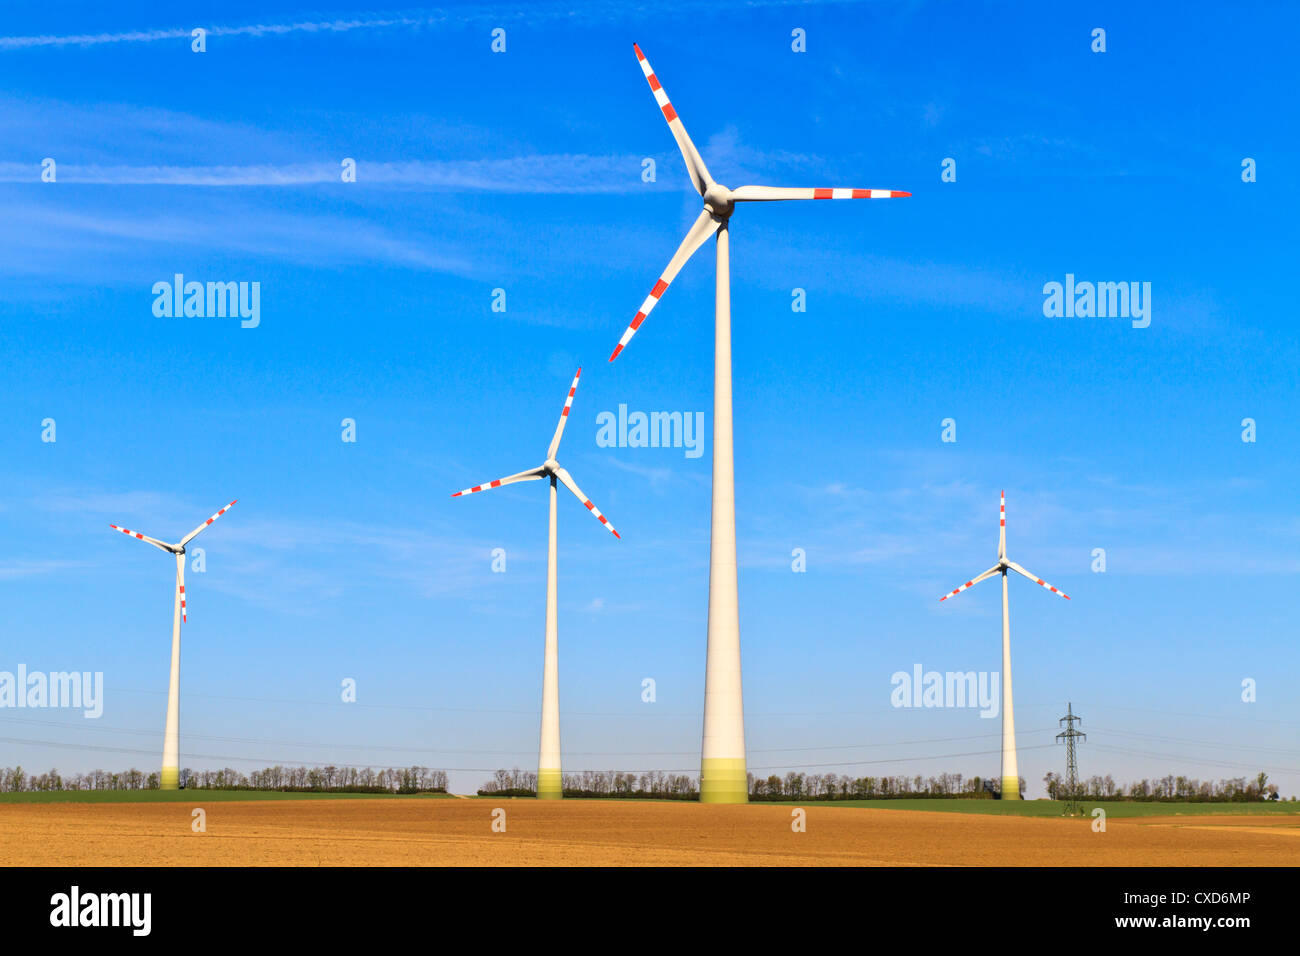 Meadow with Wind turbines generating electricity - Stock Image